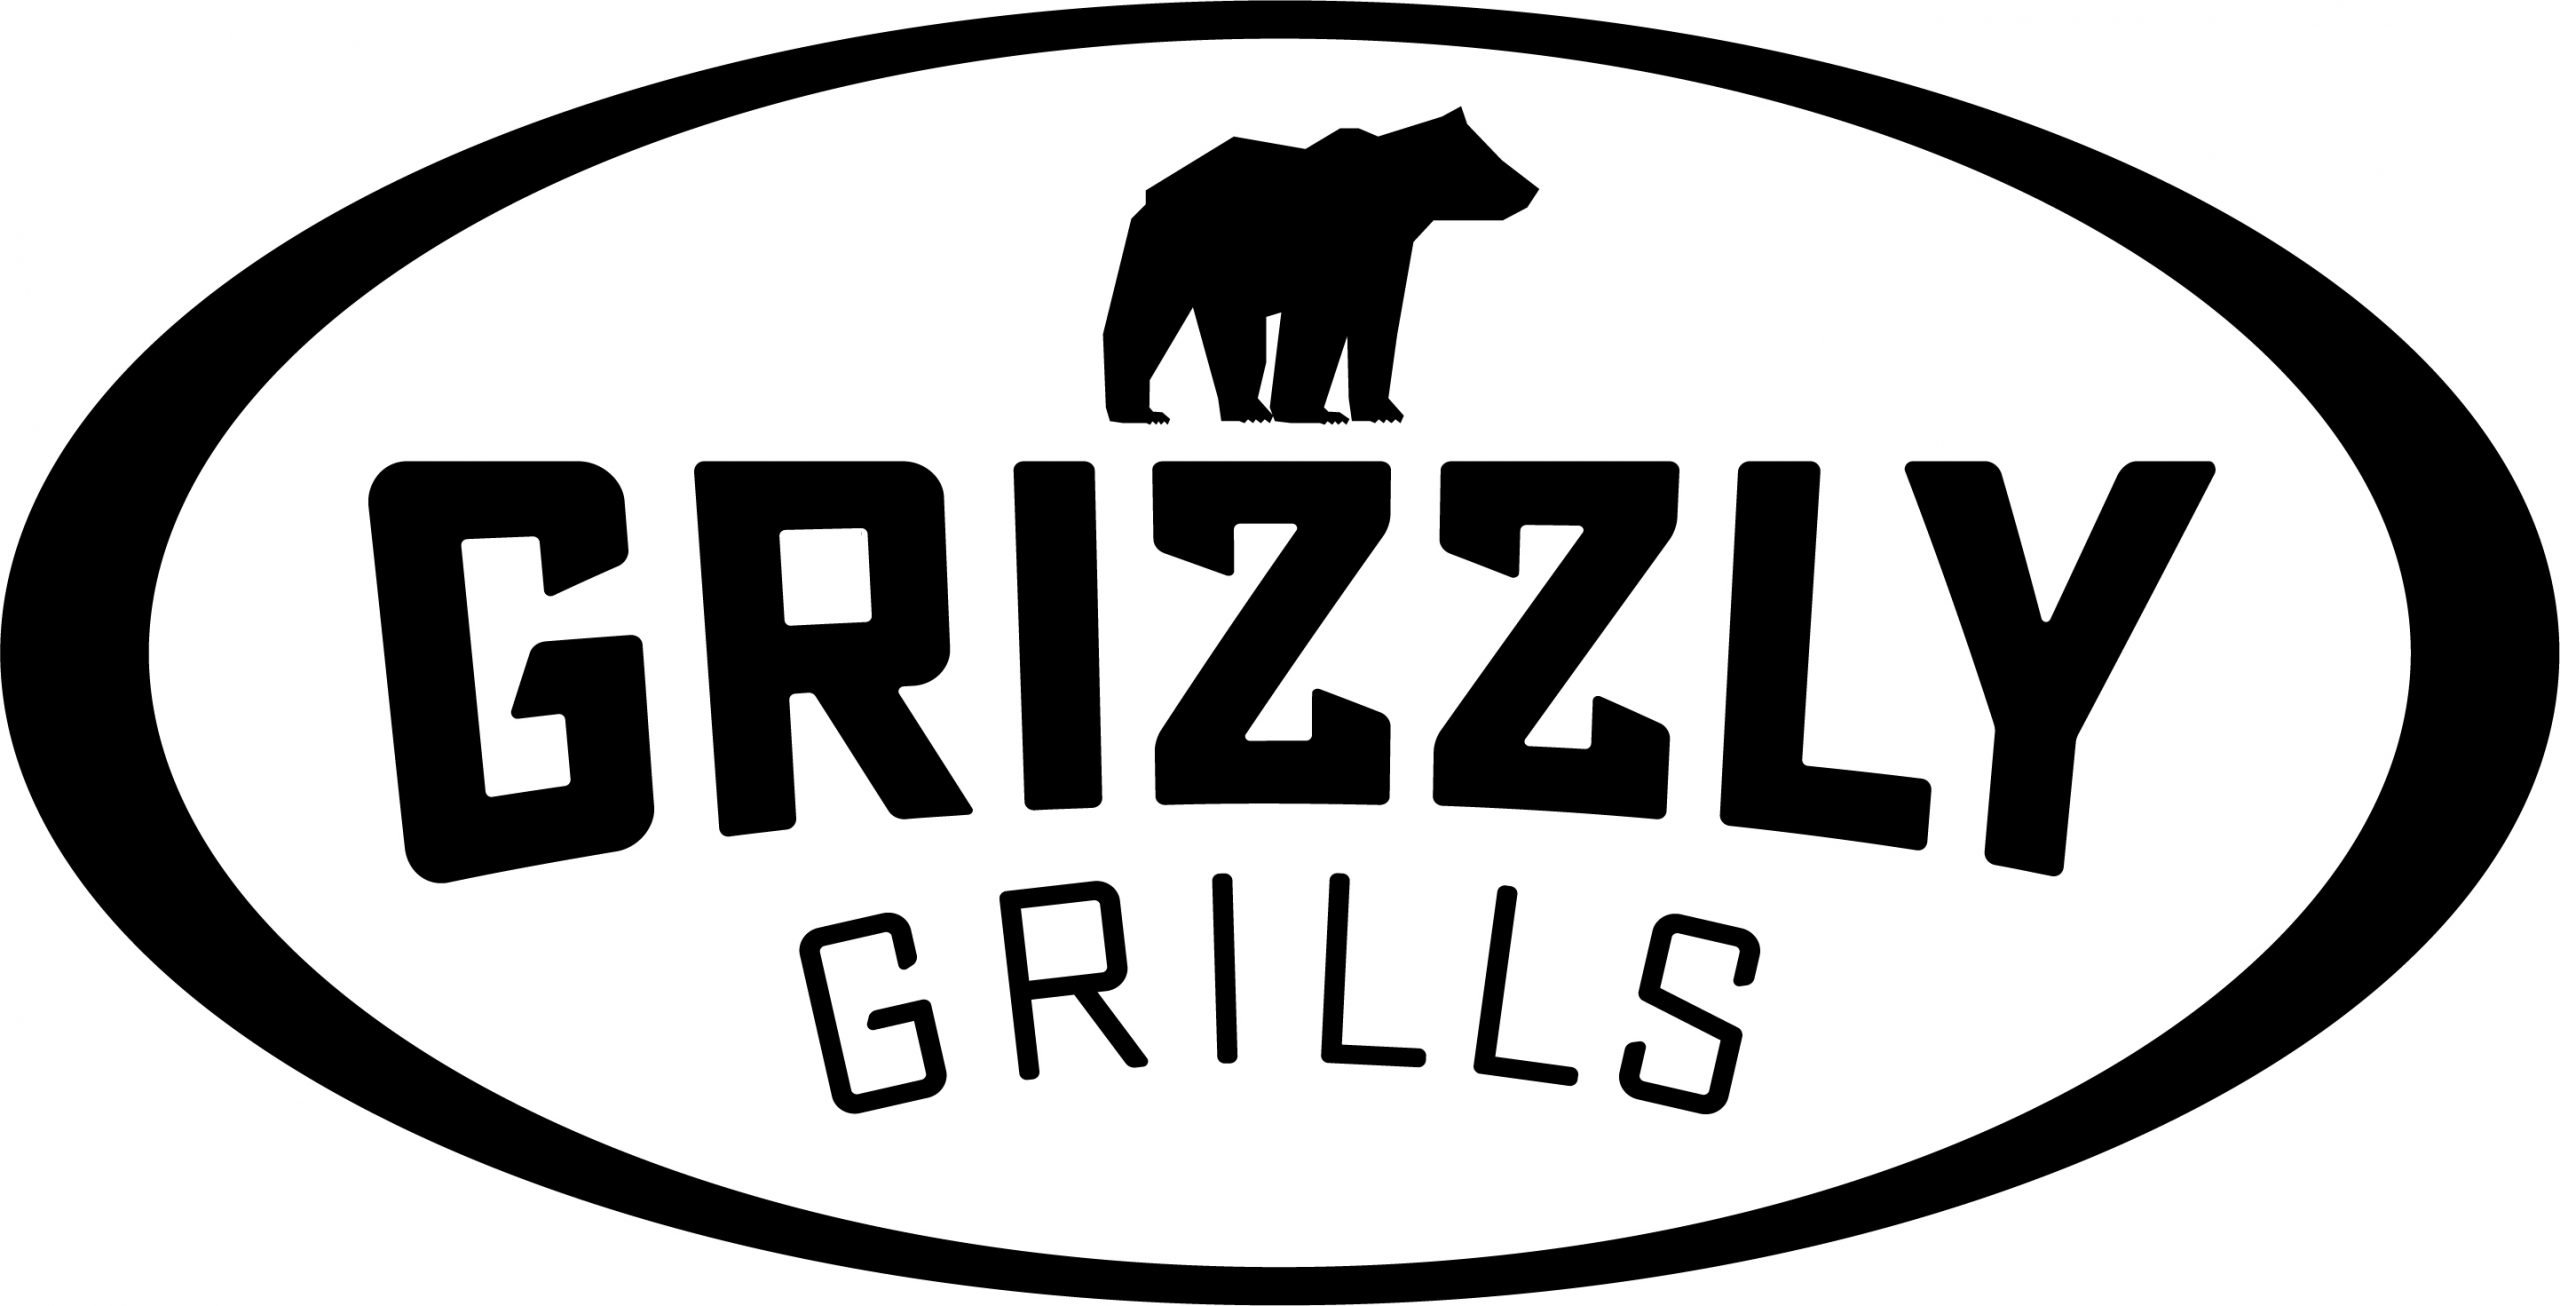 https://200fahrenheit.nl/wp-content/uploads/2020/01/Grizzly-Grills_Full-logo_Black-scaled.jpg